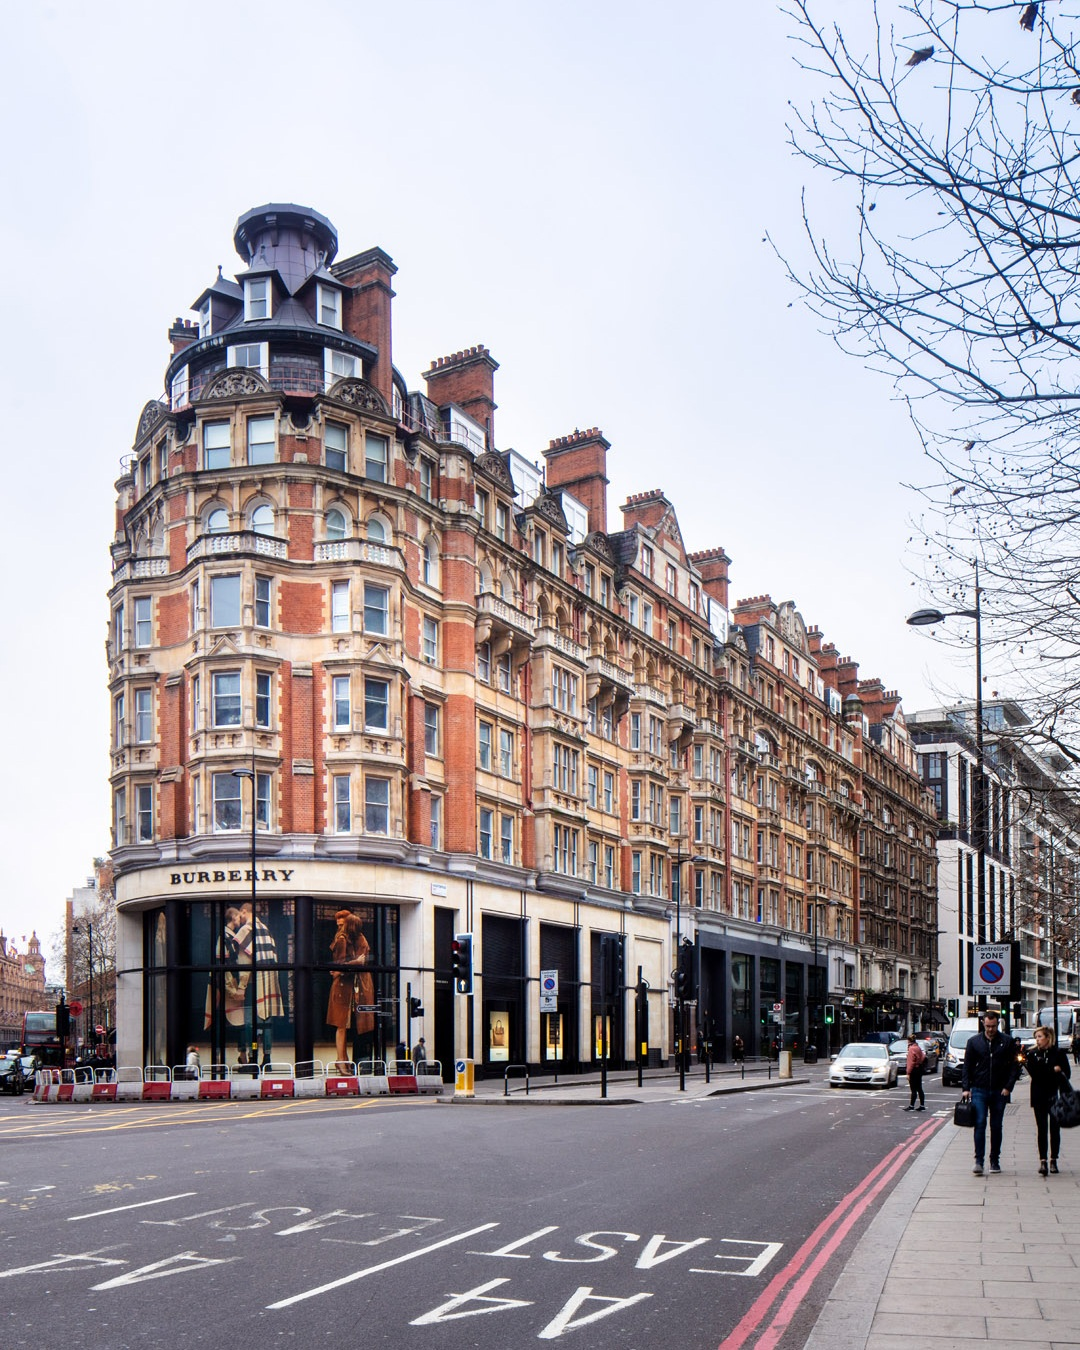 burberry building - knightsbridge, sw1